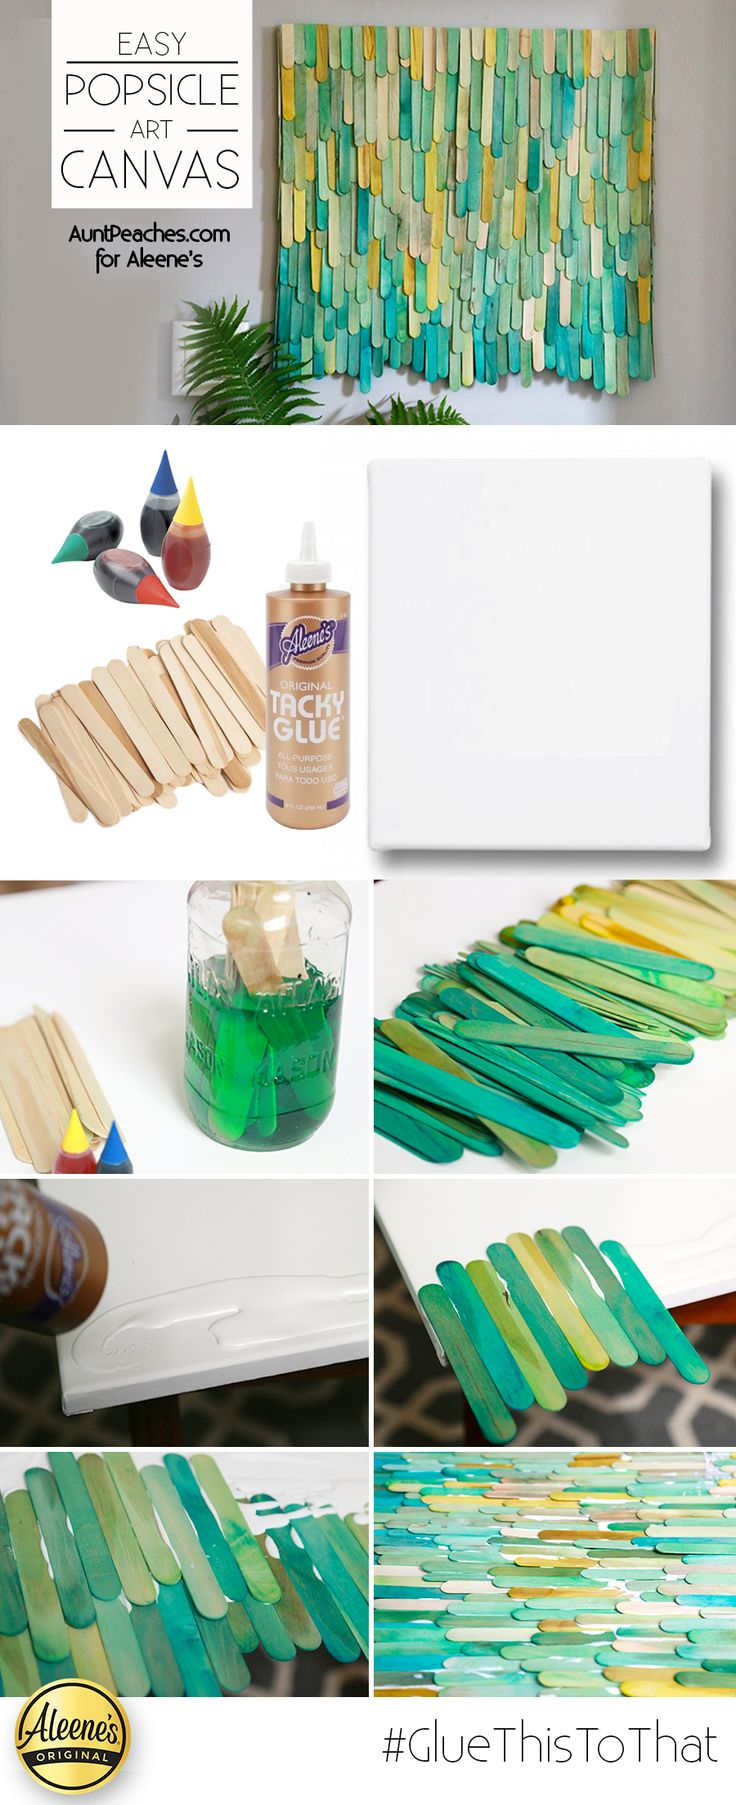 Make this cool DIY popsicle art using dyed popsicle sticks and Aleene's Tacky Glue with maureen amero